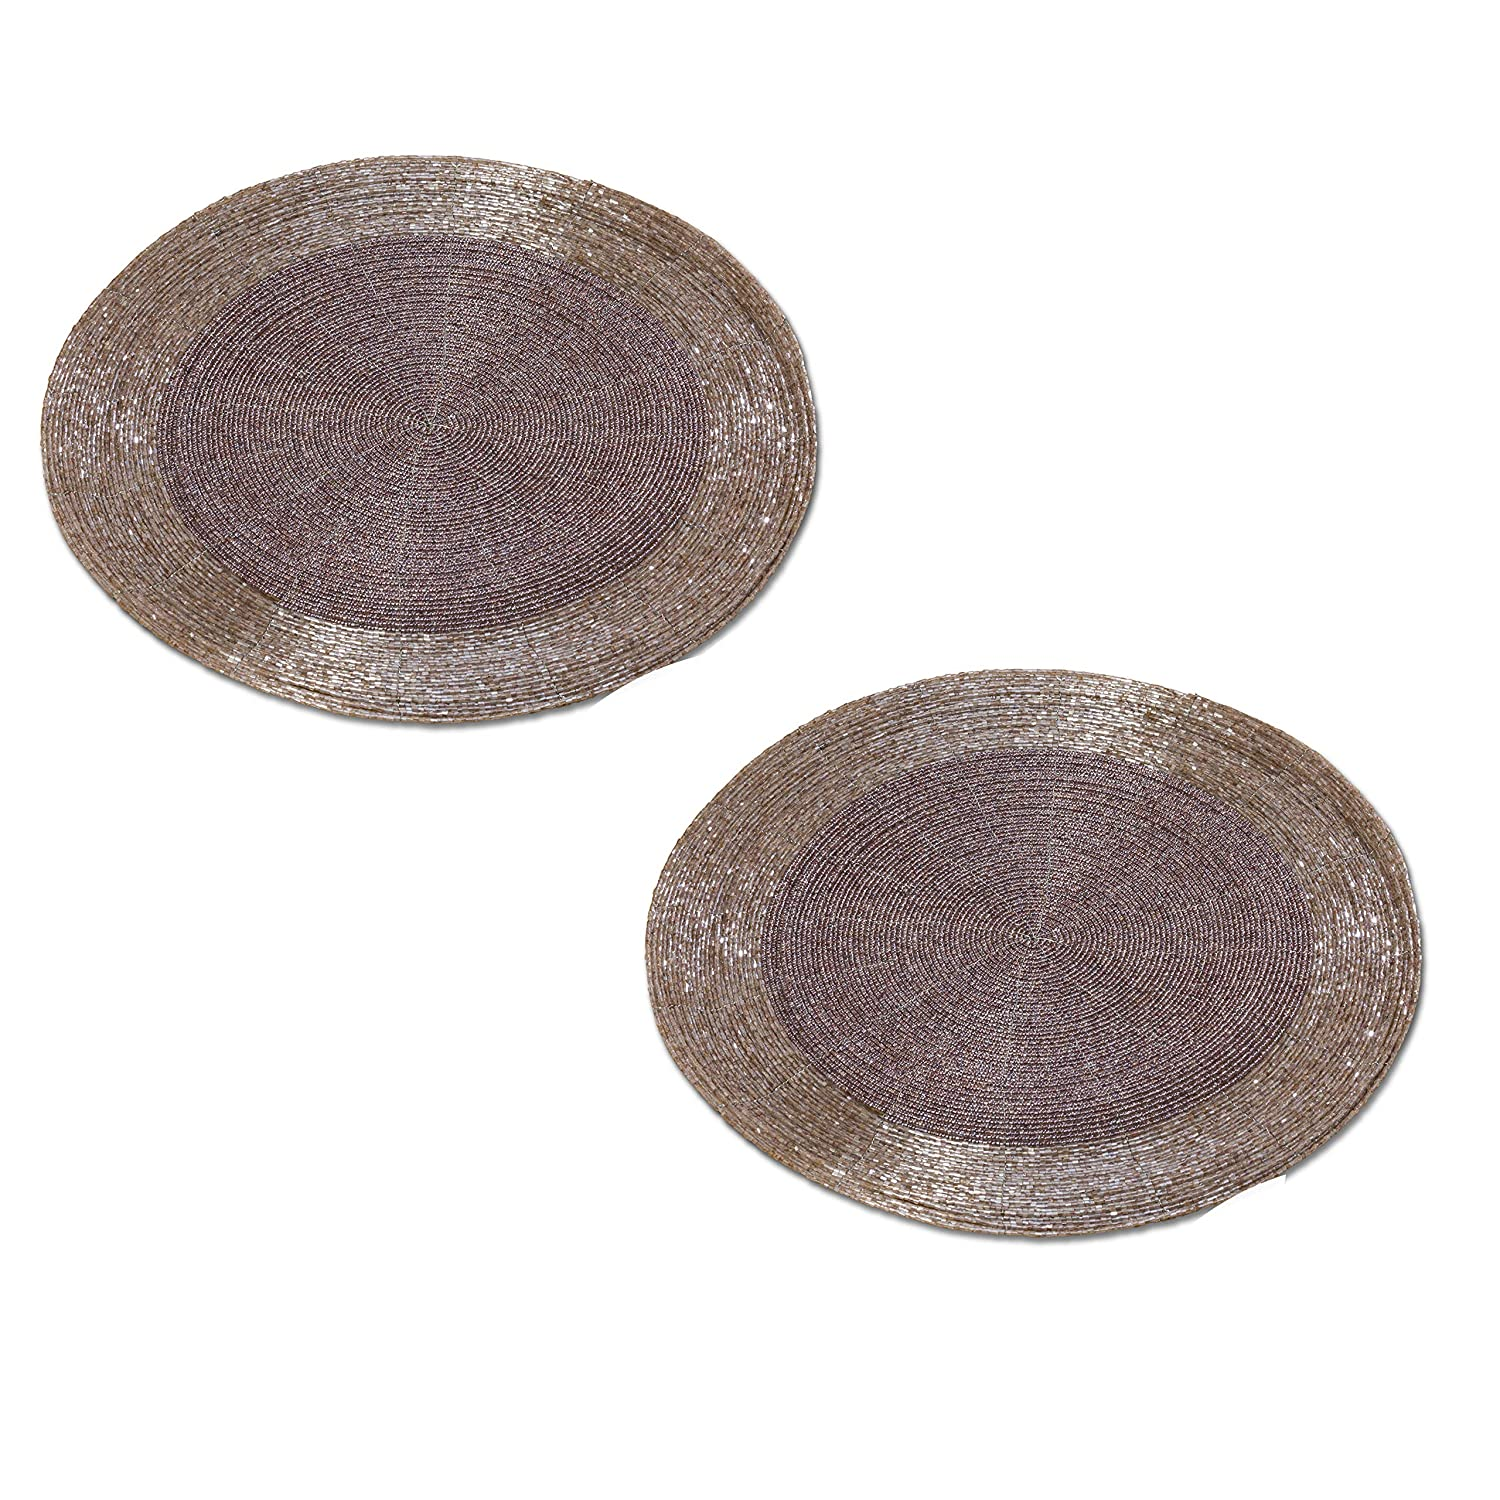 Whole House Worlds Crosby Street Shimmer and Chic Round Silver and Pale Purple Lavender Filigree Beaded Placemats, Set of 2, Wire, Glass, 13 3/4 Inches Diameter